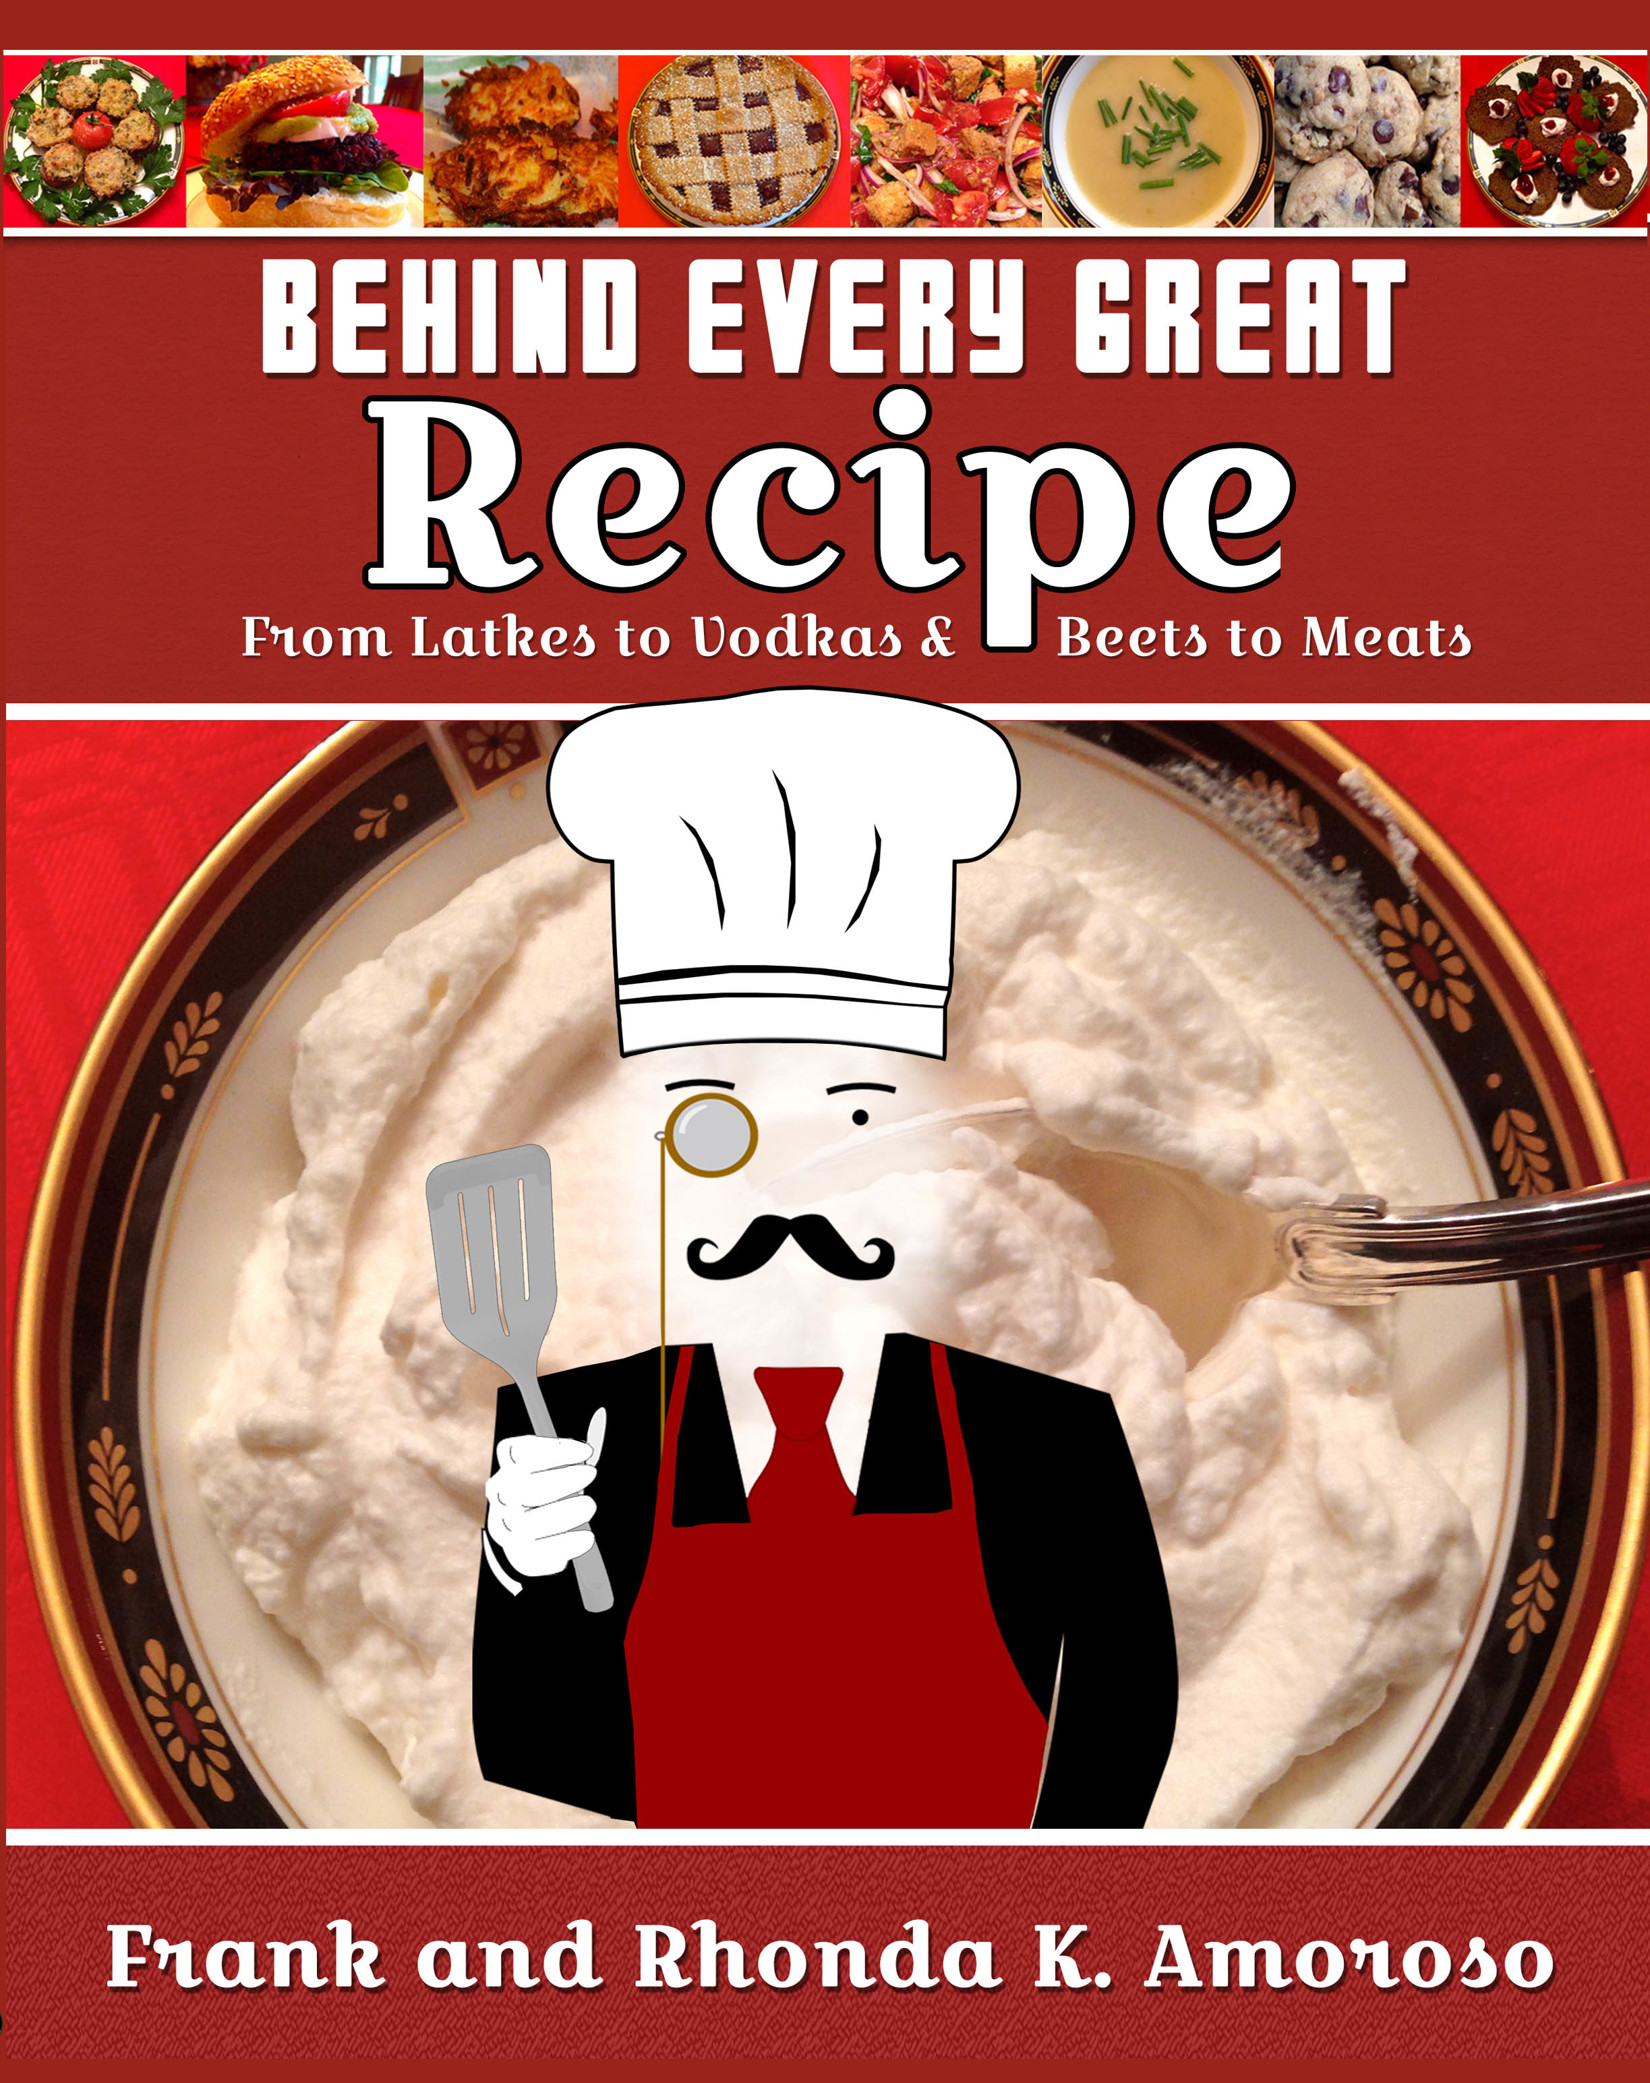 Behind Every Great Recipe - Frank Amoroso & Rhonda Amoroso